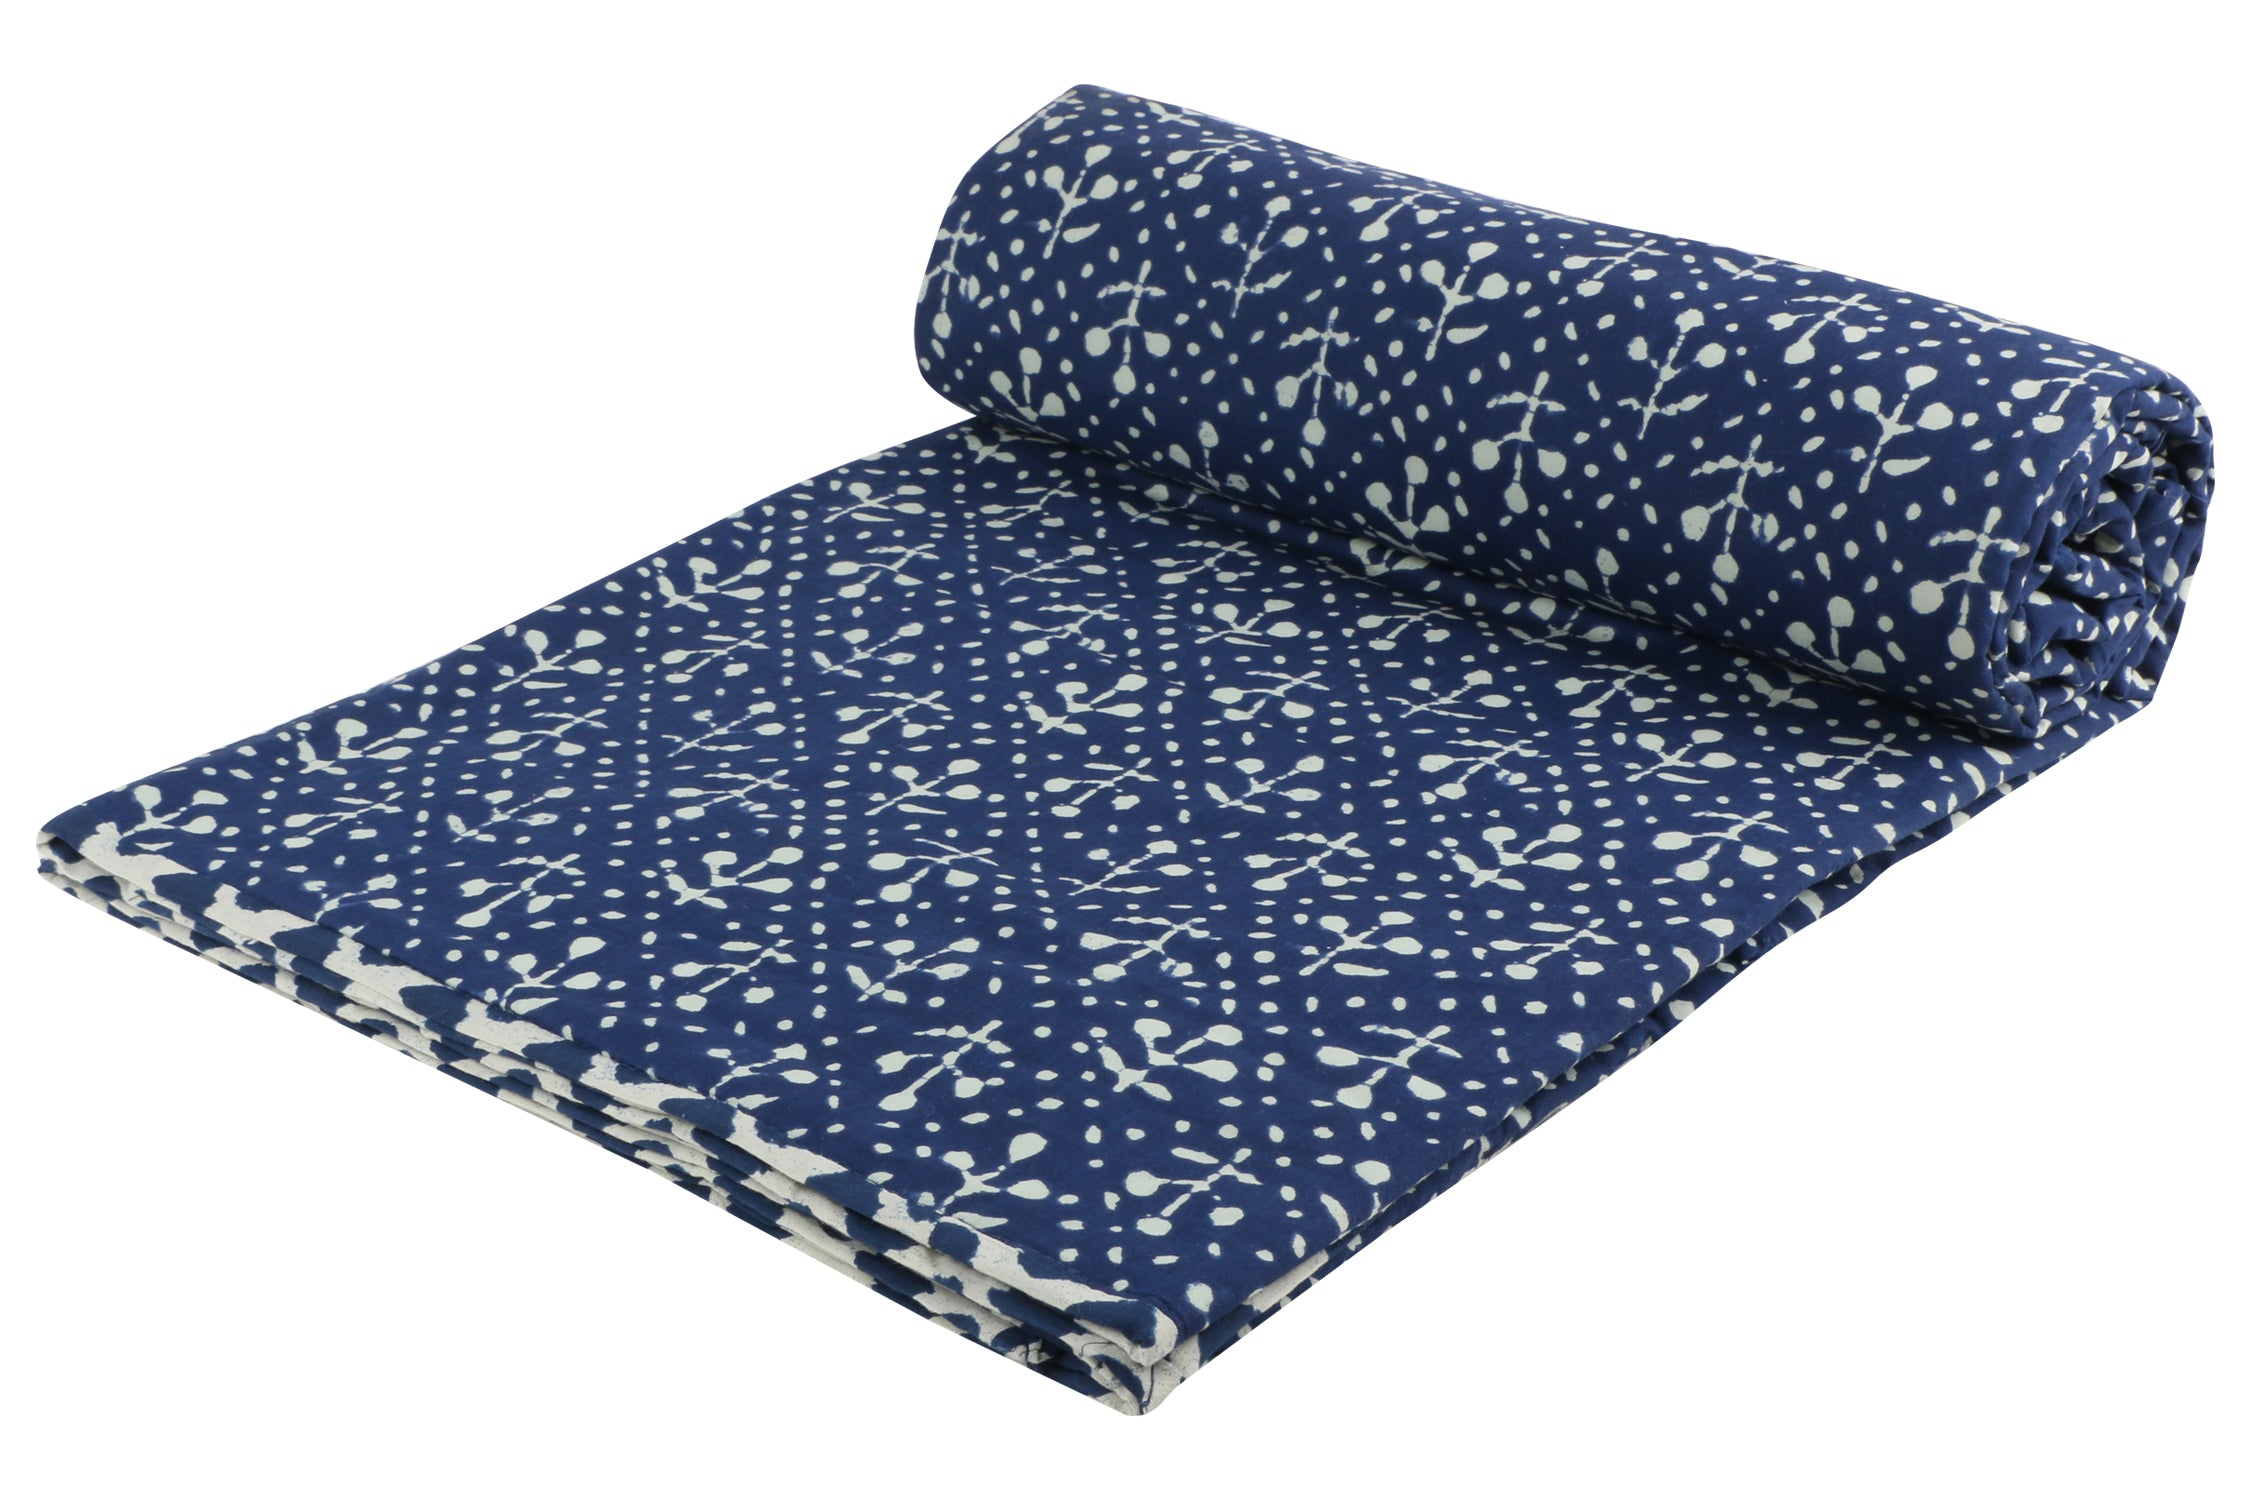 Indigo Reversible Cotton Single Dohar - 5 (90 x 58 inches)